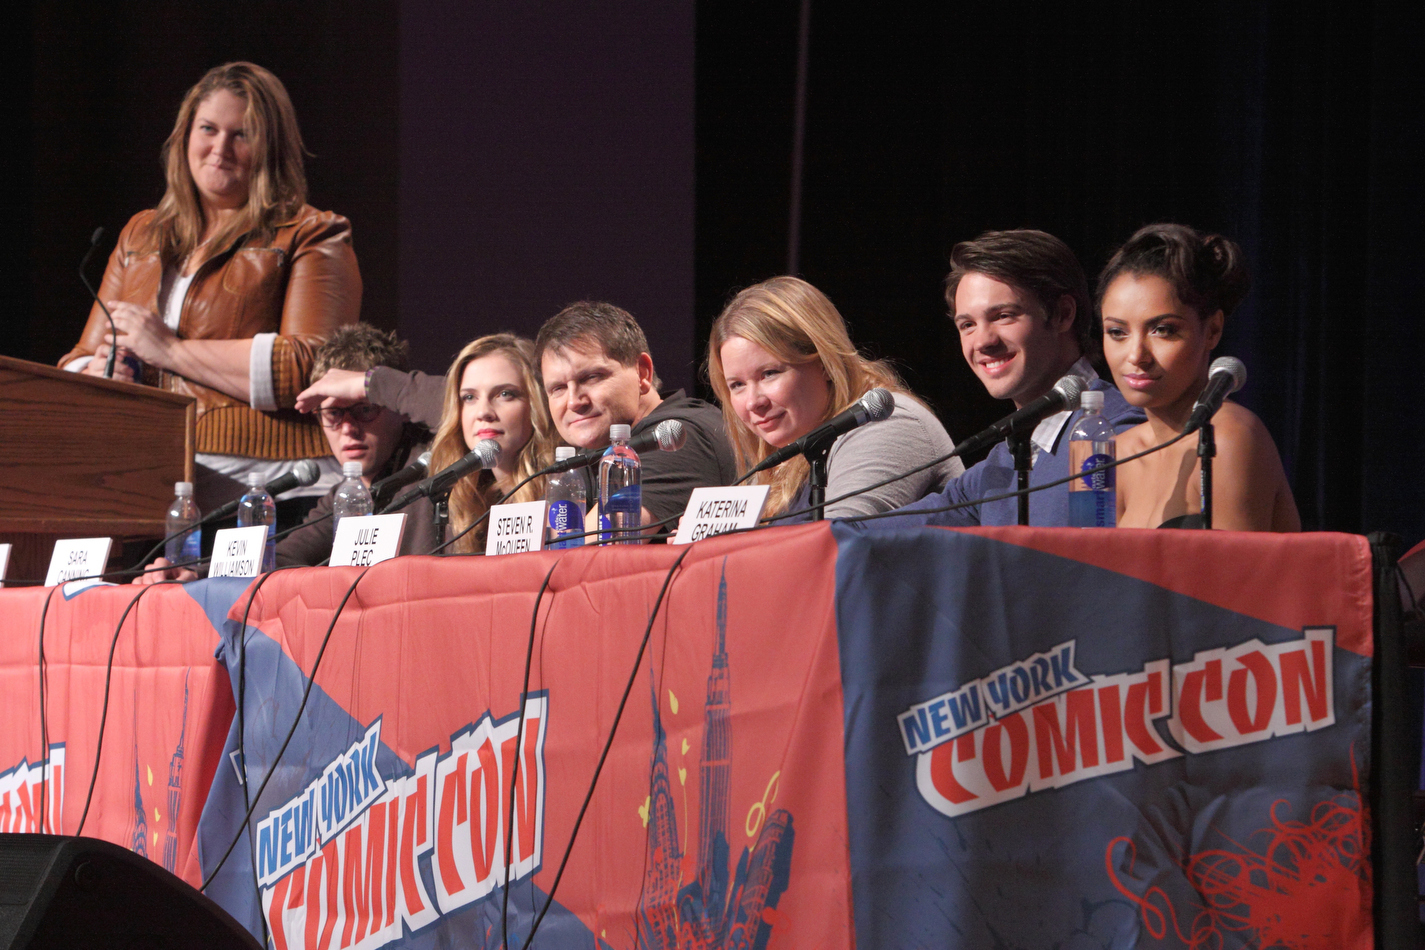 http://images4.fanpop.com/image/photos/16200000/New-York-Comic-Con-the-vampire-diaries-16246902-1425-950.jpg